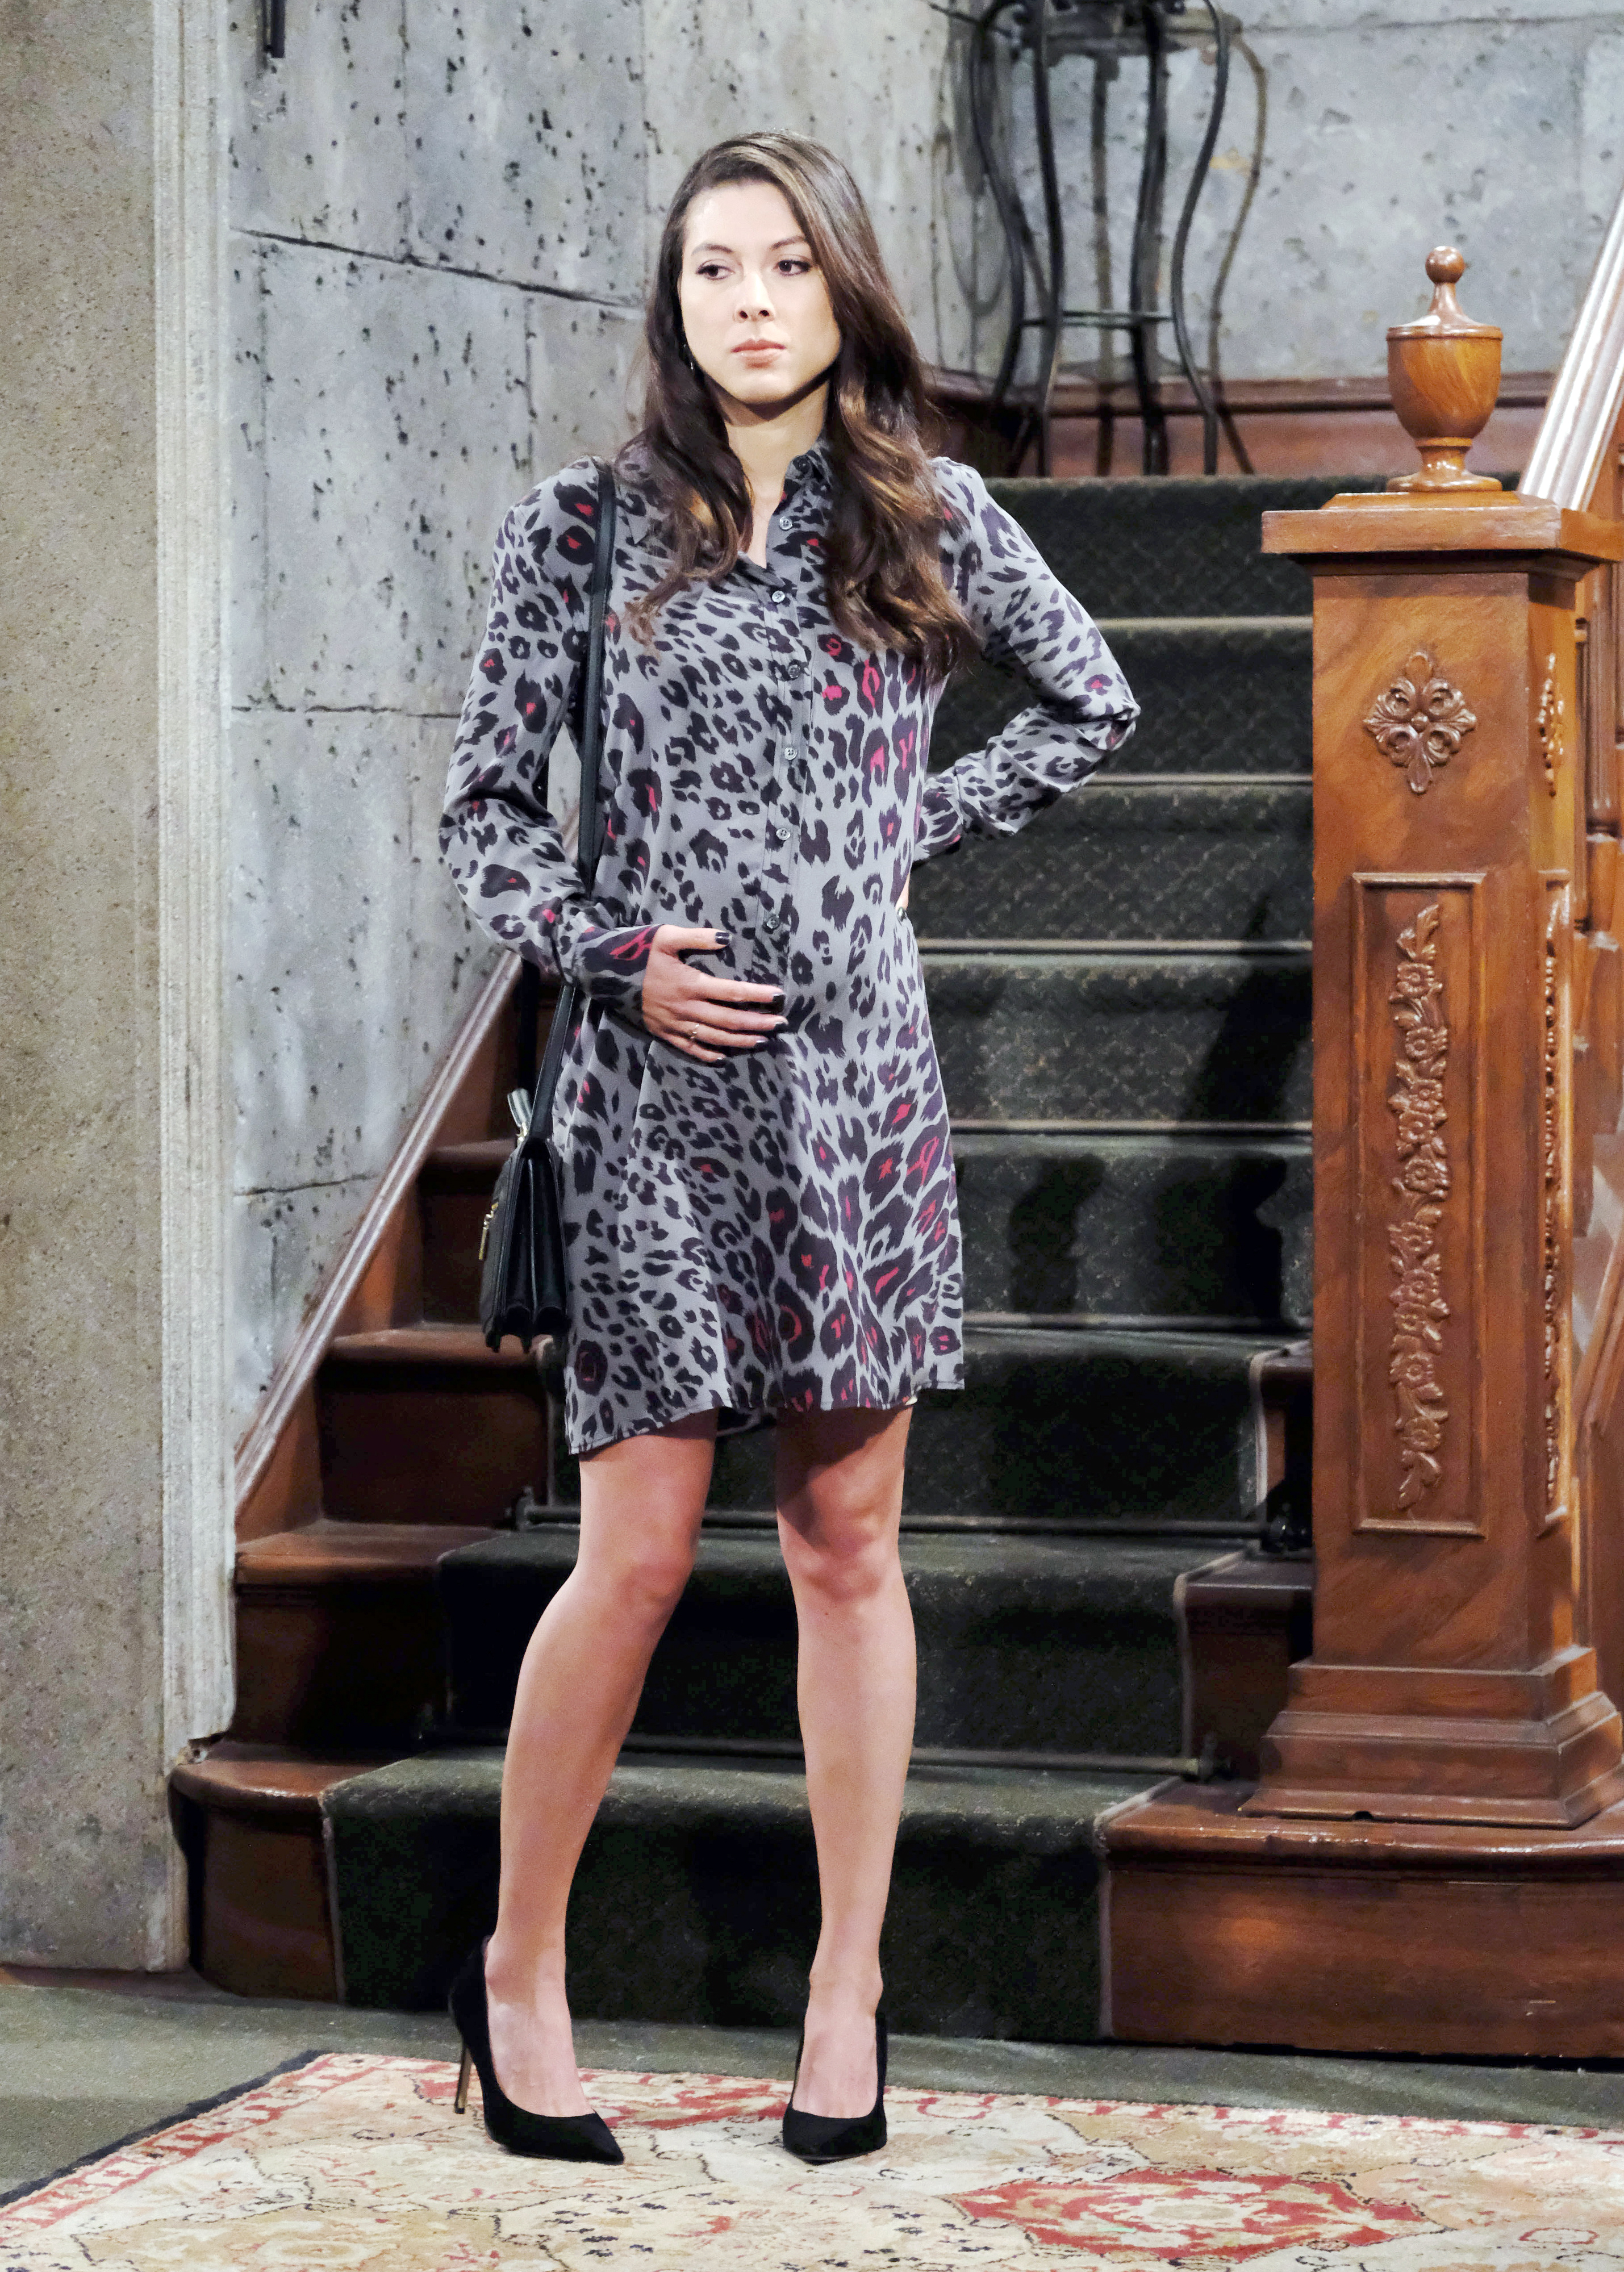 Y&R Spoilers: Lily is blindsided by Juliet.